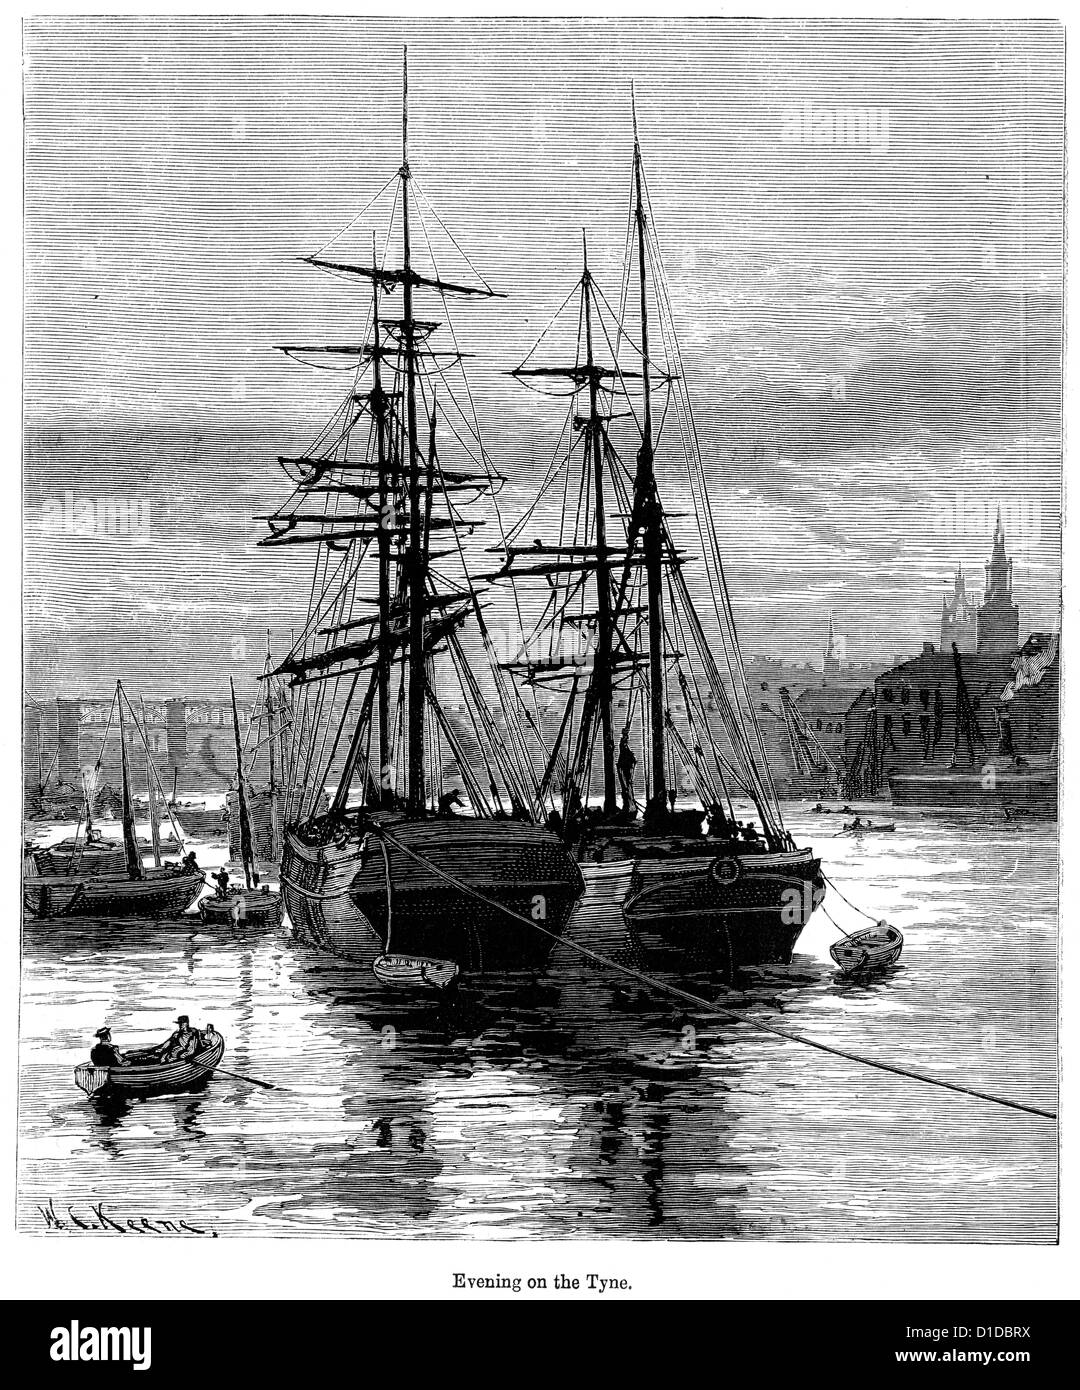 Victorian engraving of a ships moored on the River Tyne , 1897 - Stock Image